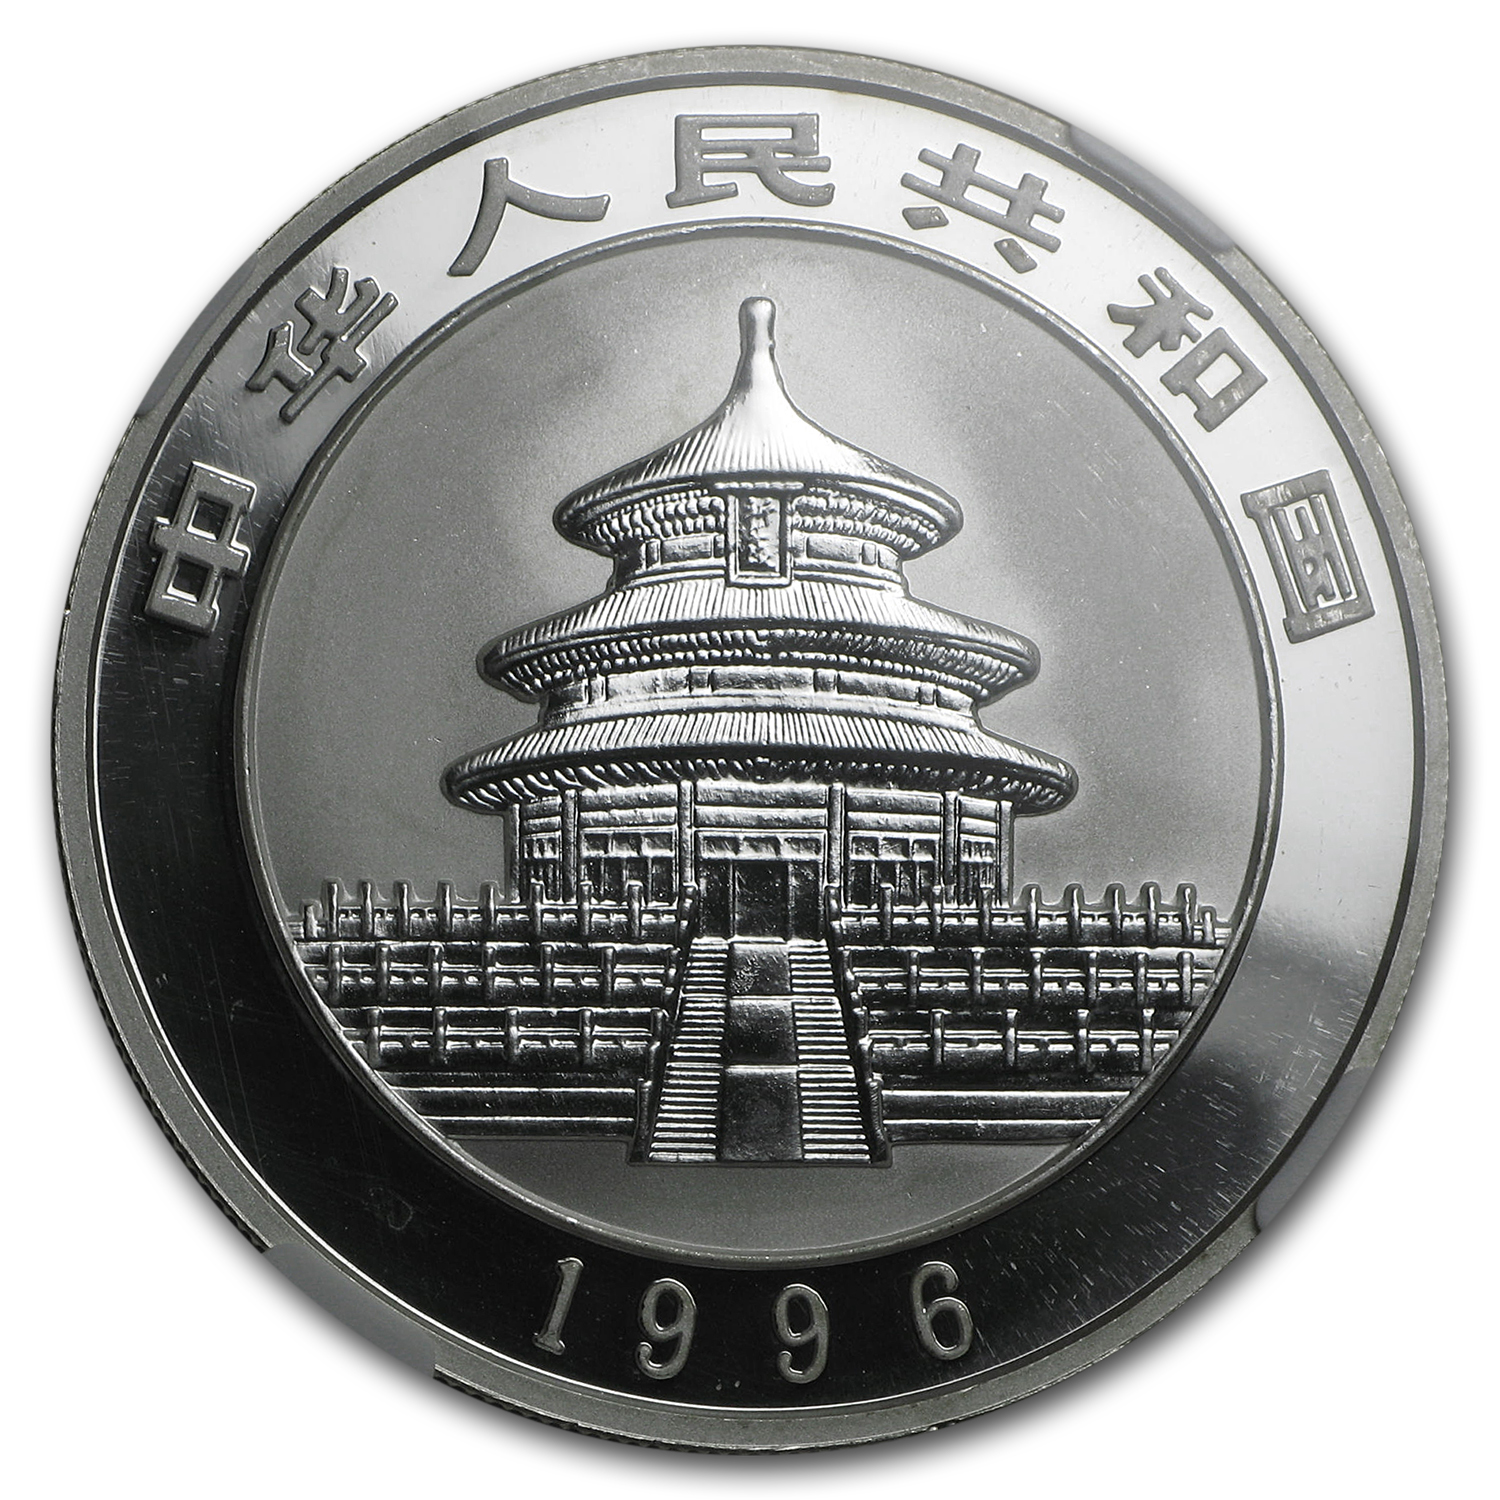 1996 China 1 oz Silver Panda PF-68 NGC